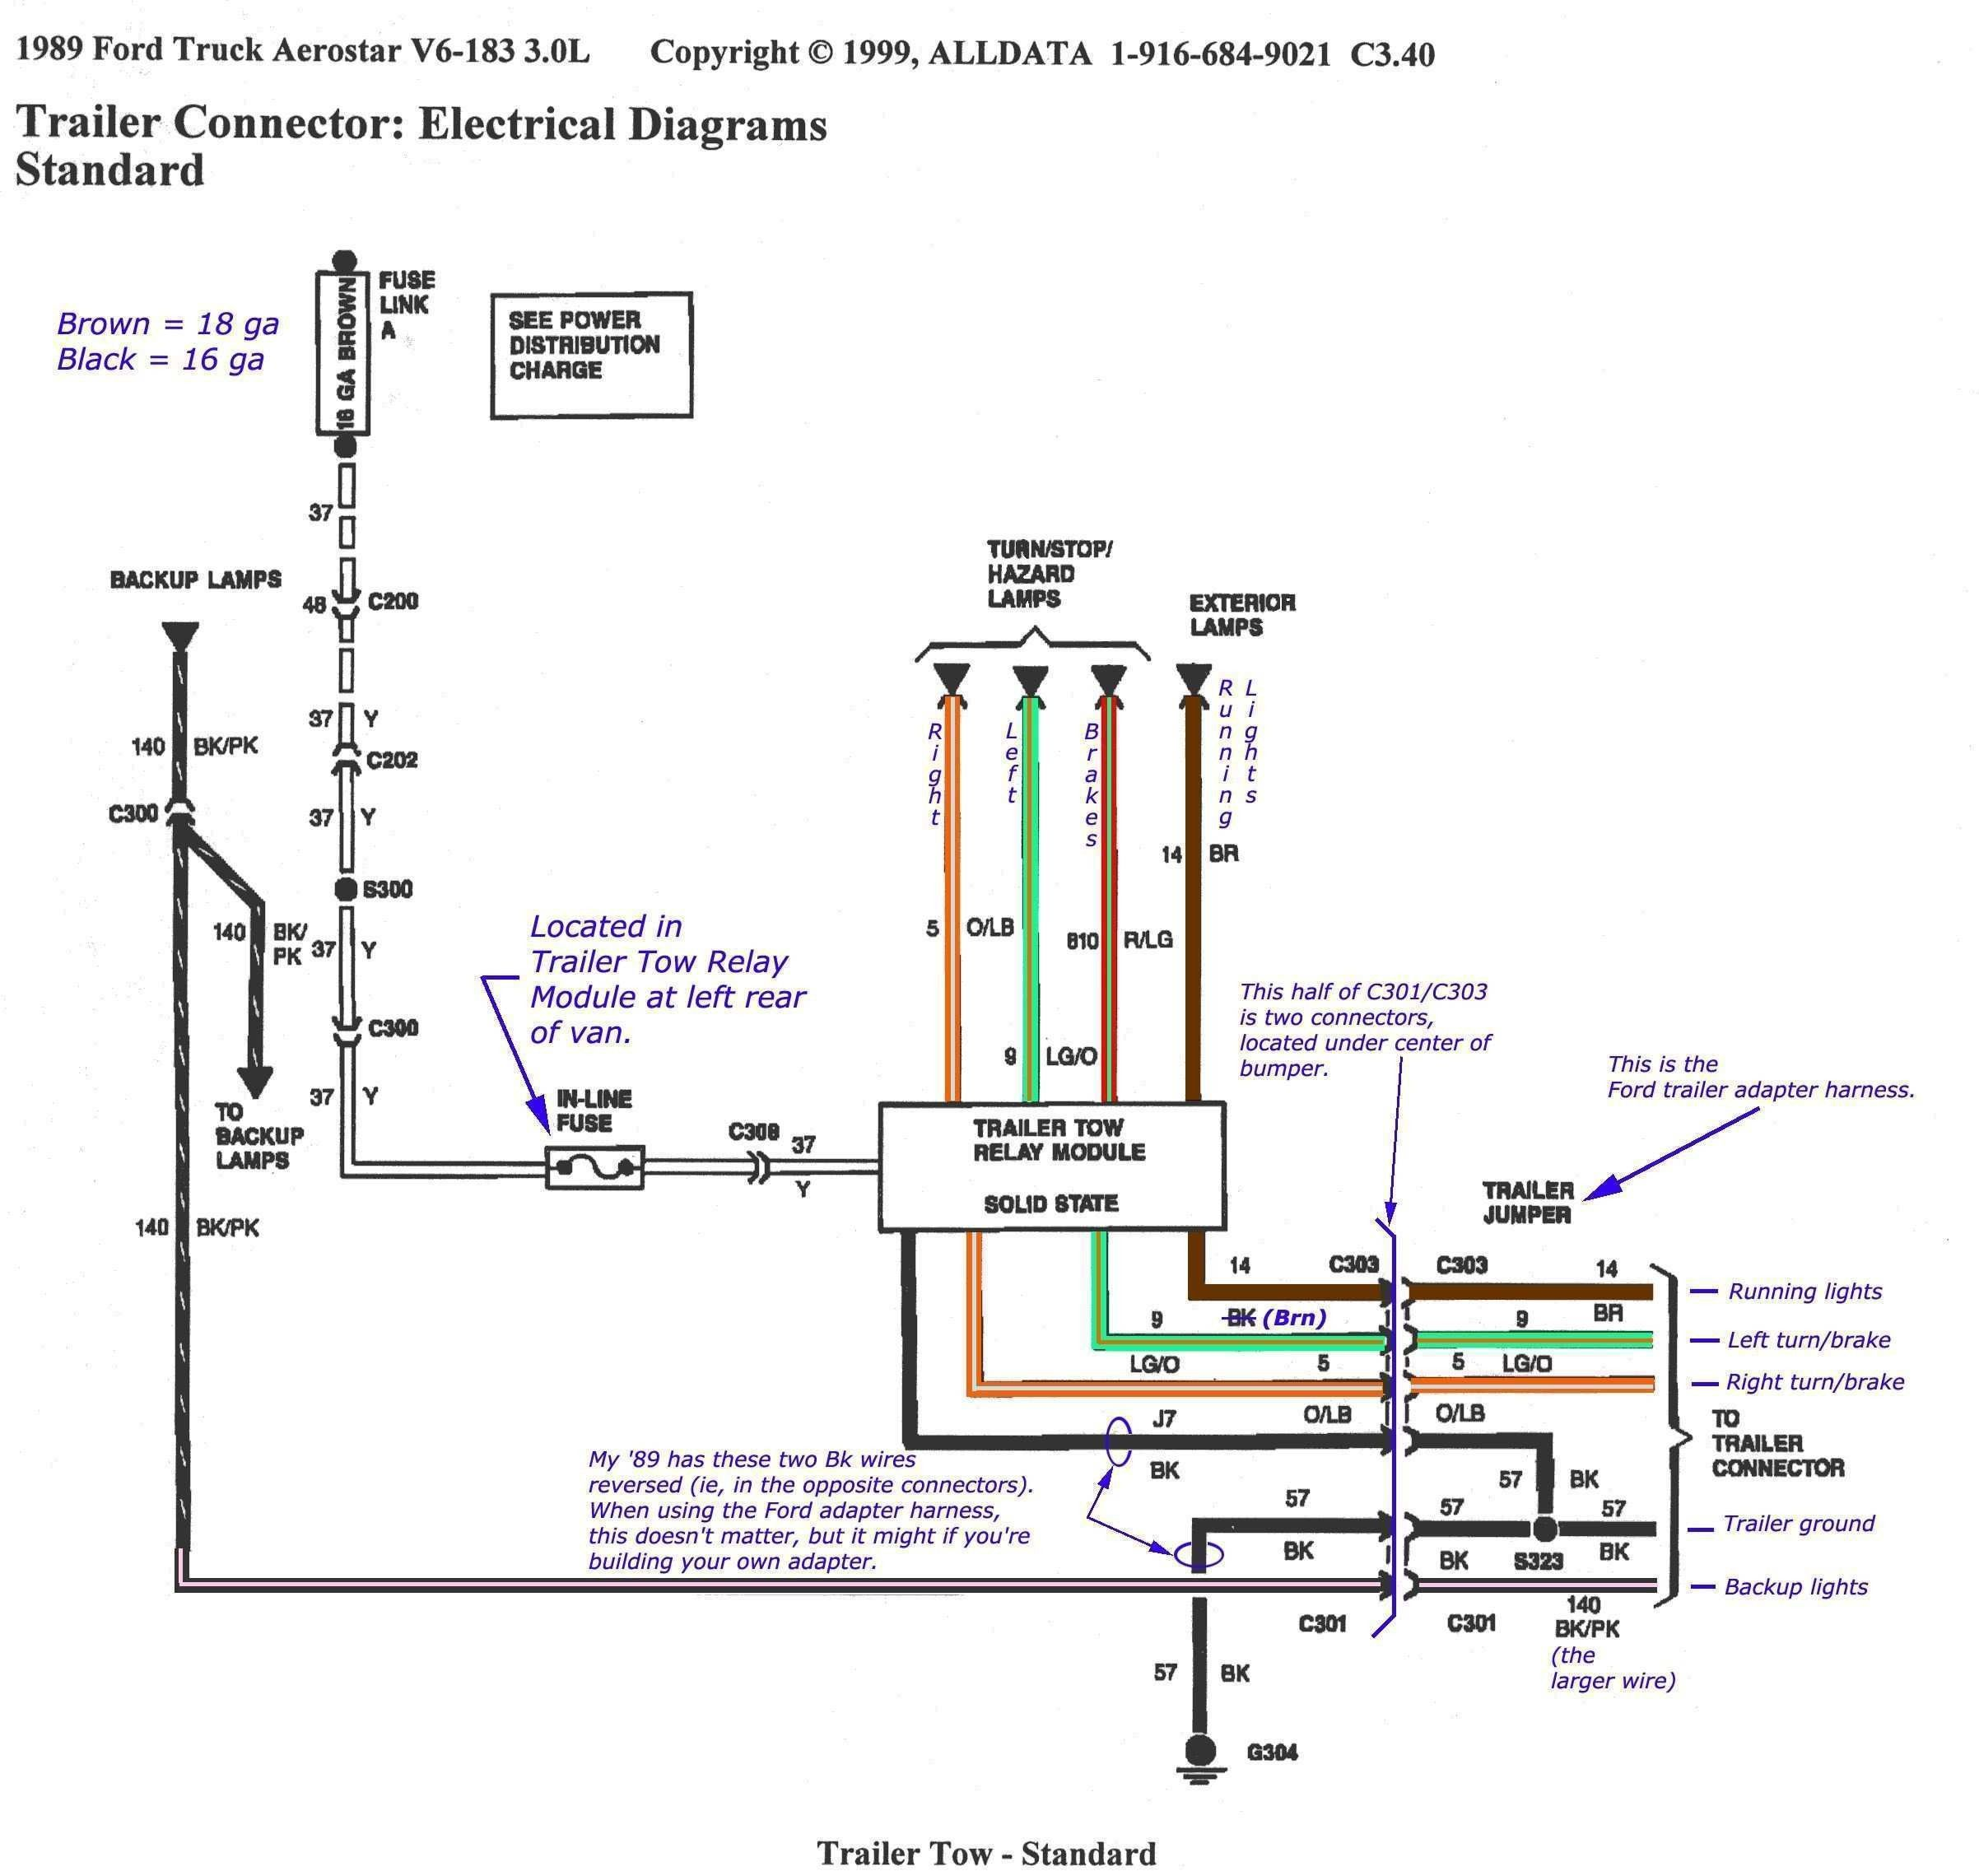 Mack Truck Wiring Diagram Free Download In 2020 Trailer Wiring Diagram Electrical Diagram Diagram